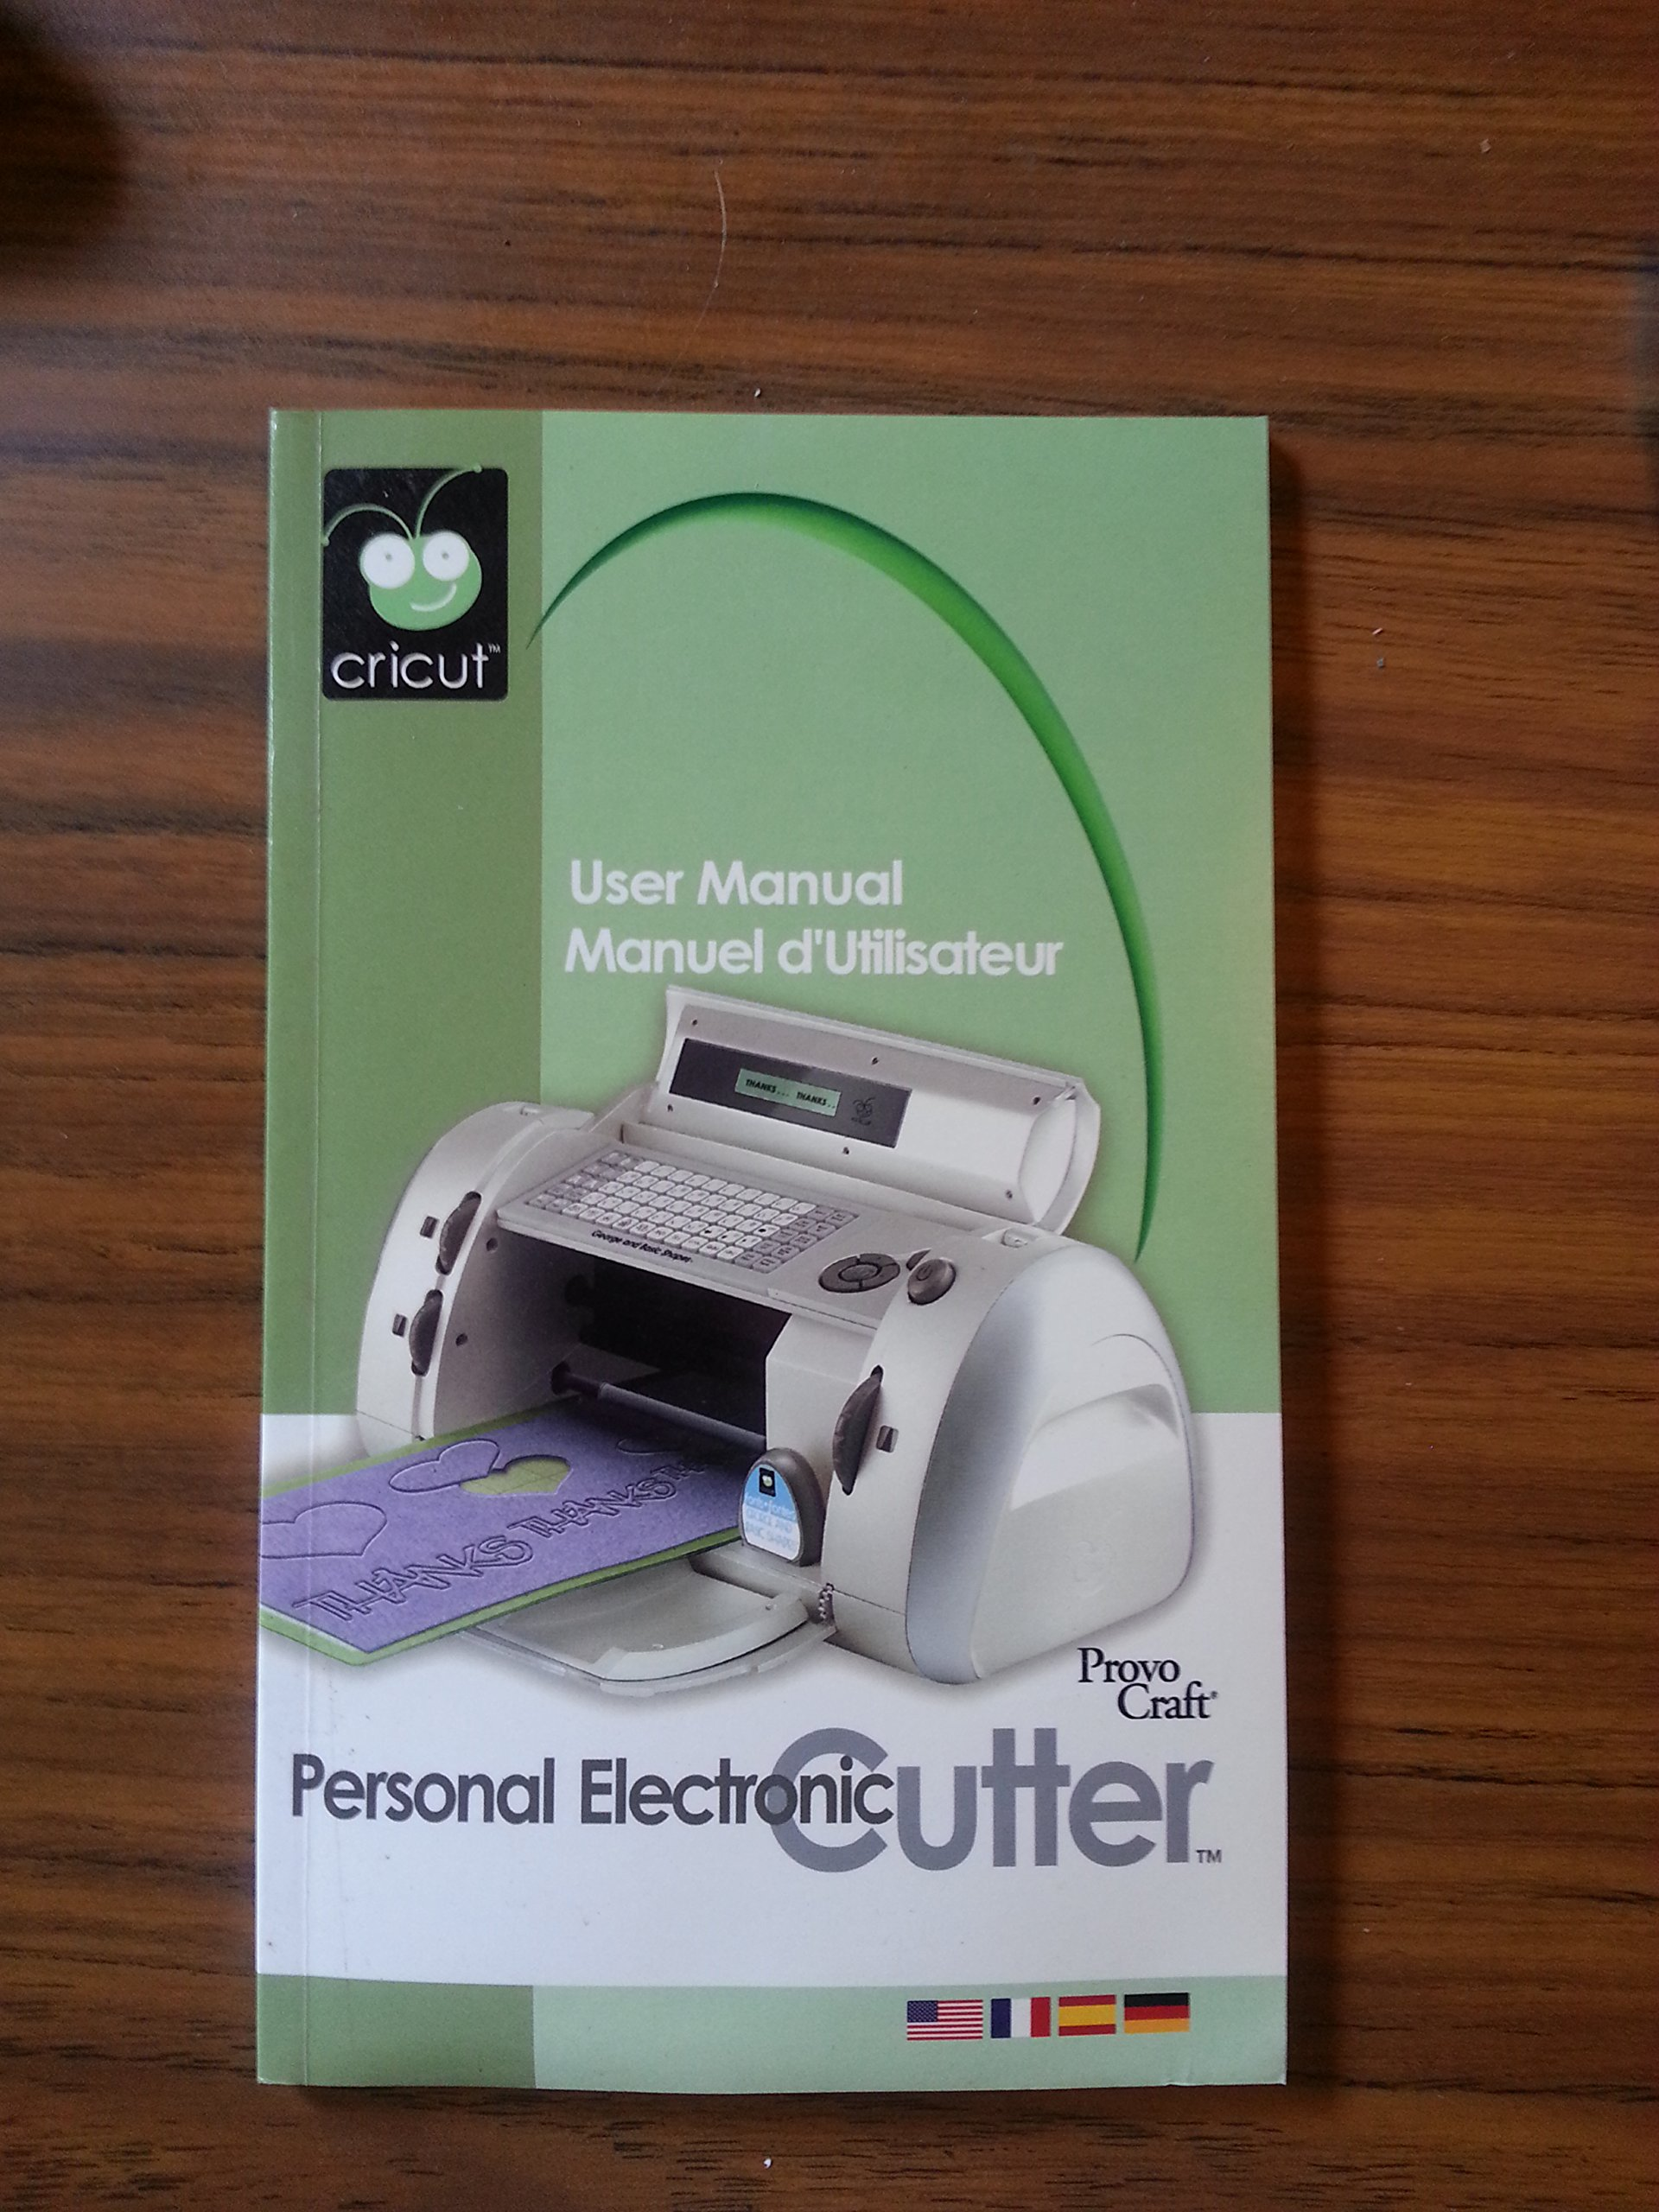 Cricut Personal Electric Cutter User Manual By Provo Craft: Amazon.com:  Books